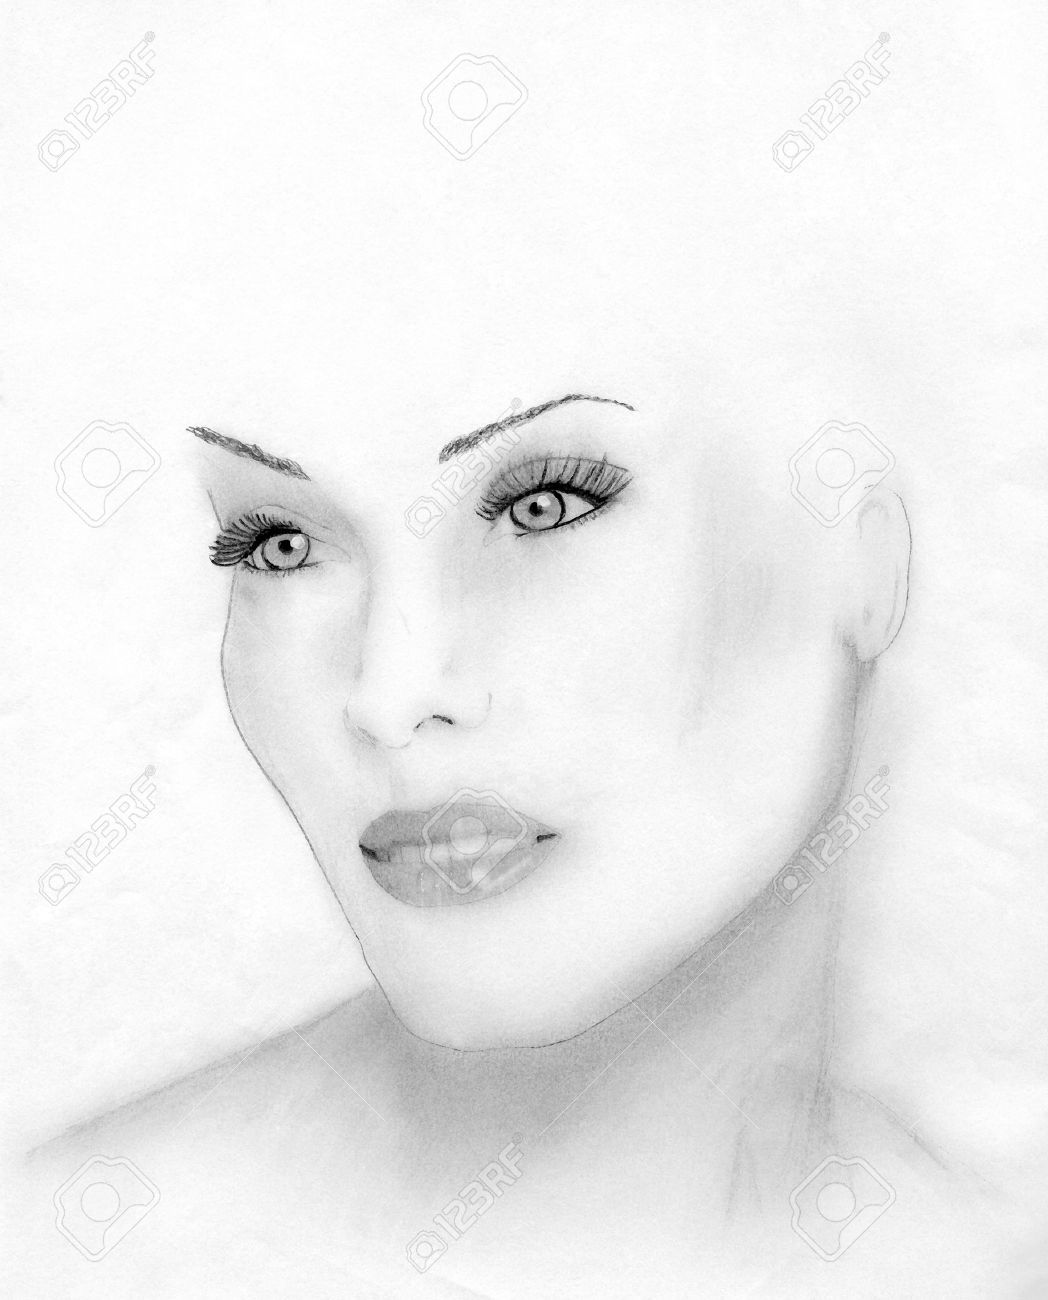 Hand drawn pencil sketch of the face of a beautiful woman